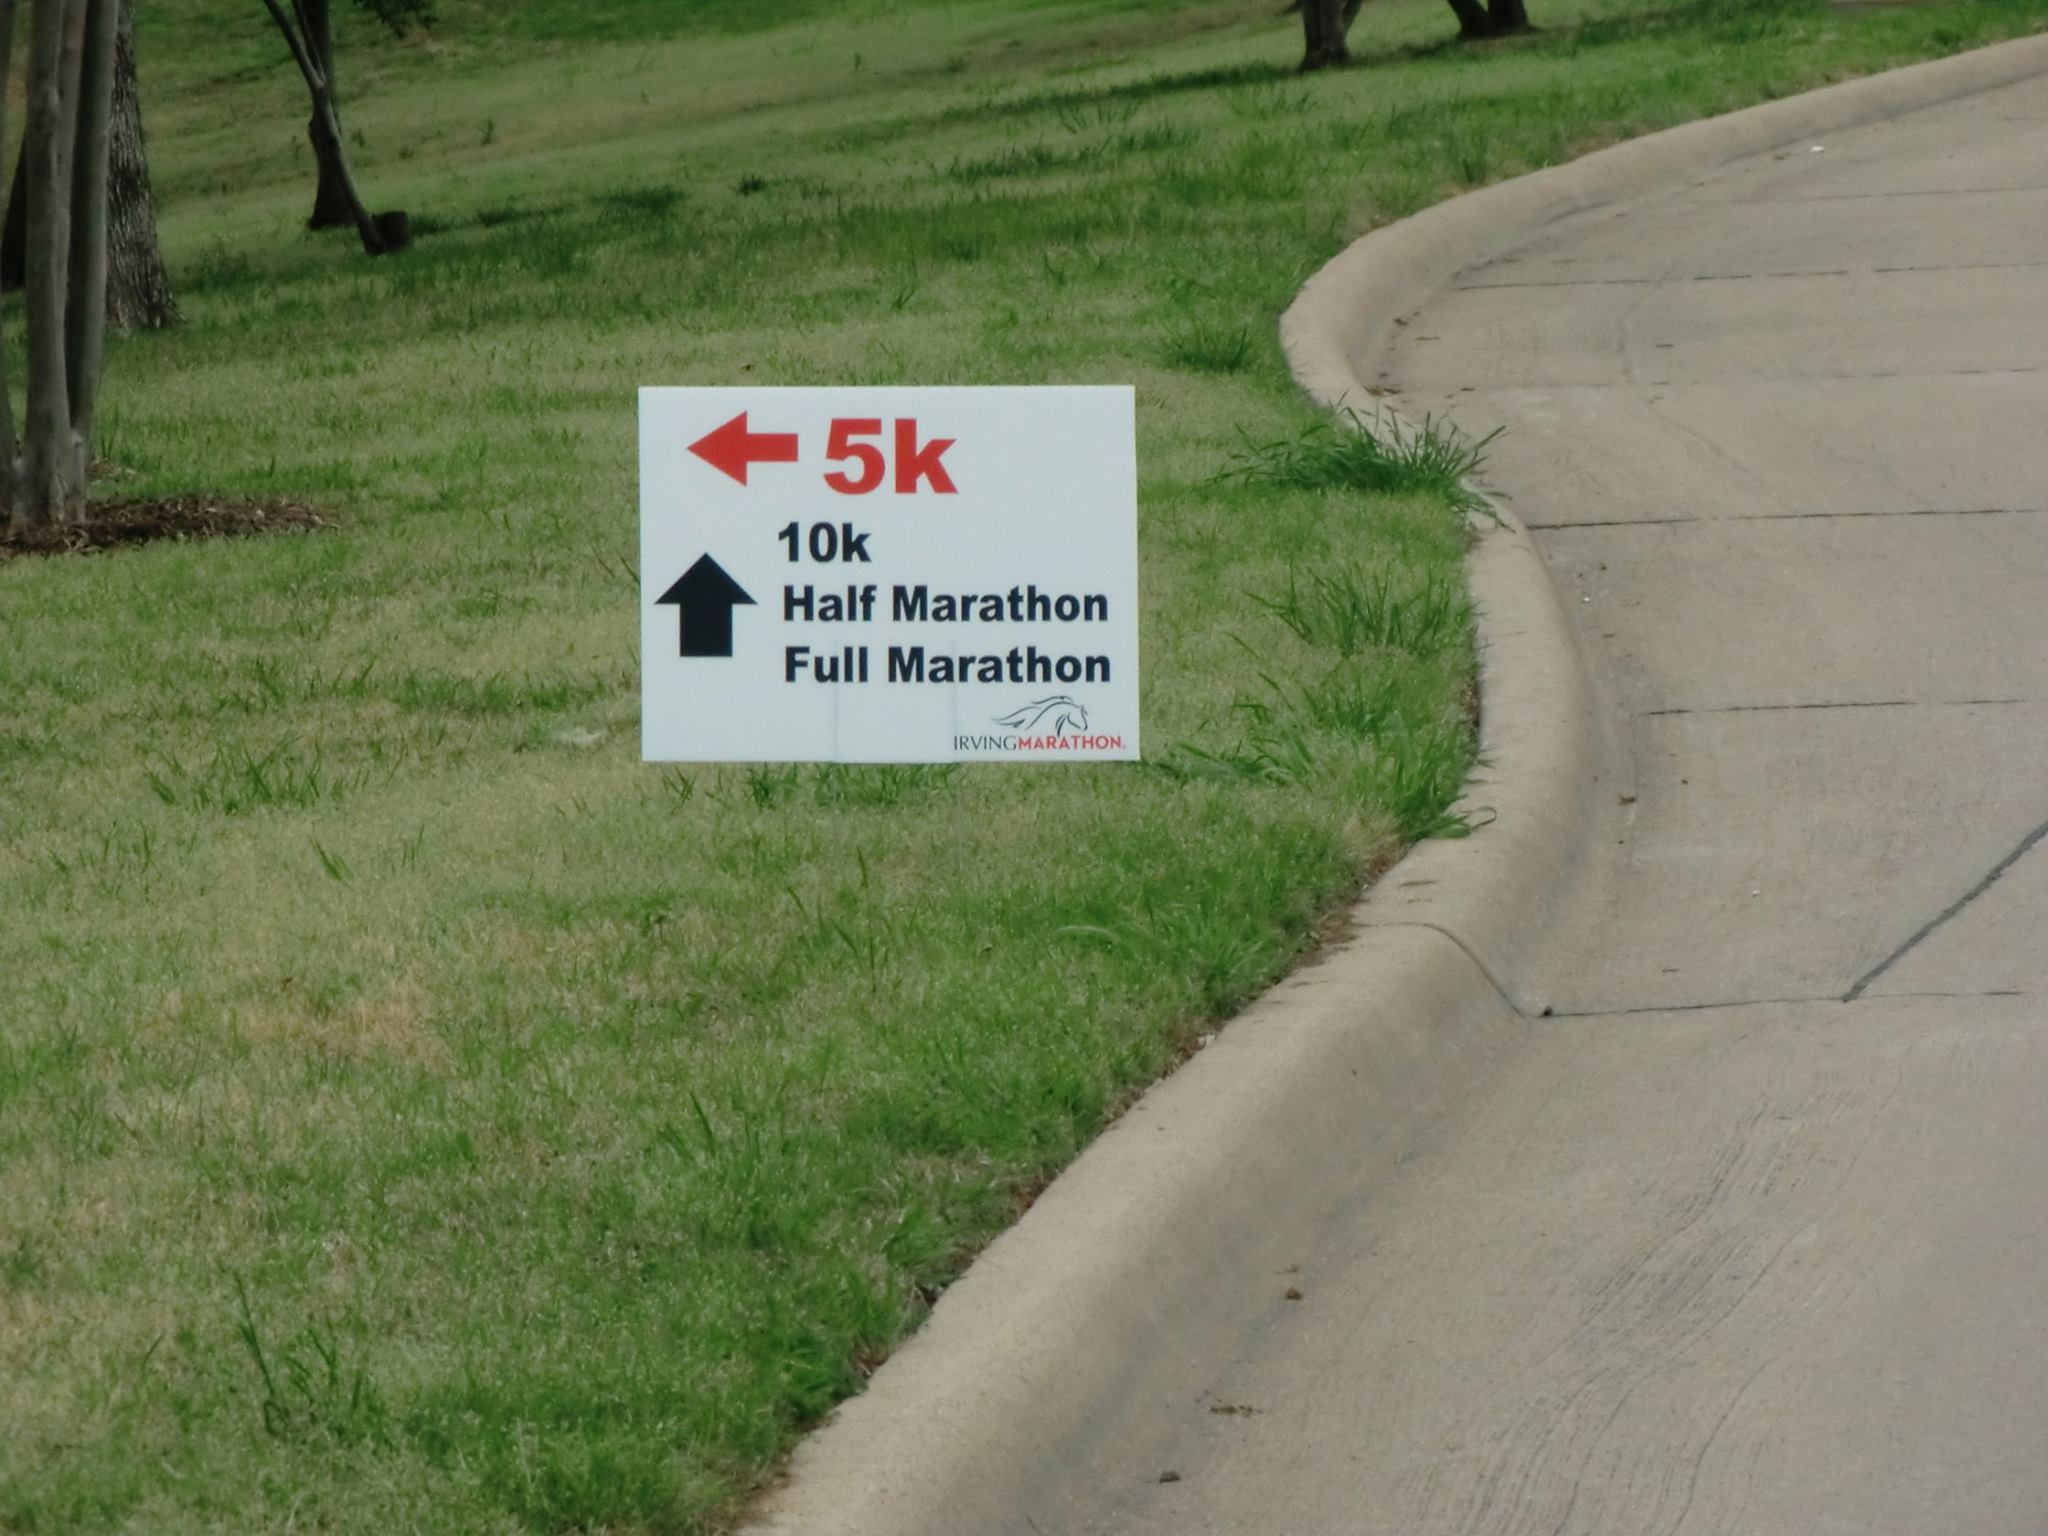 irving marathon signs.jpg